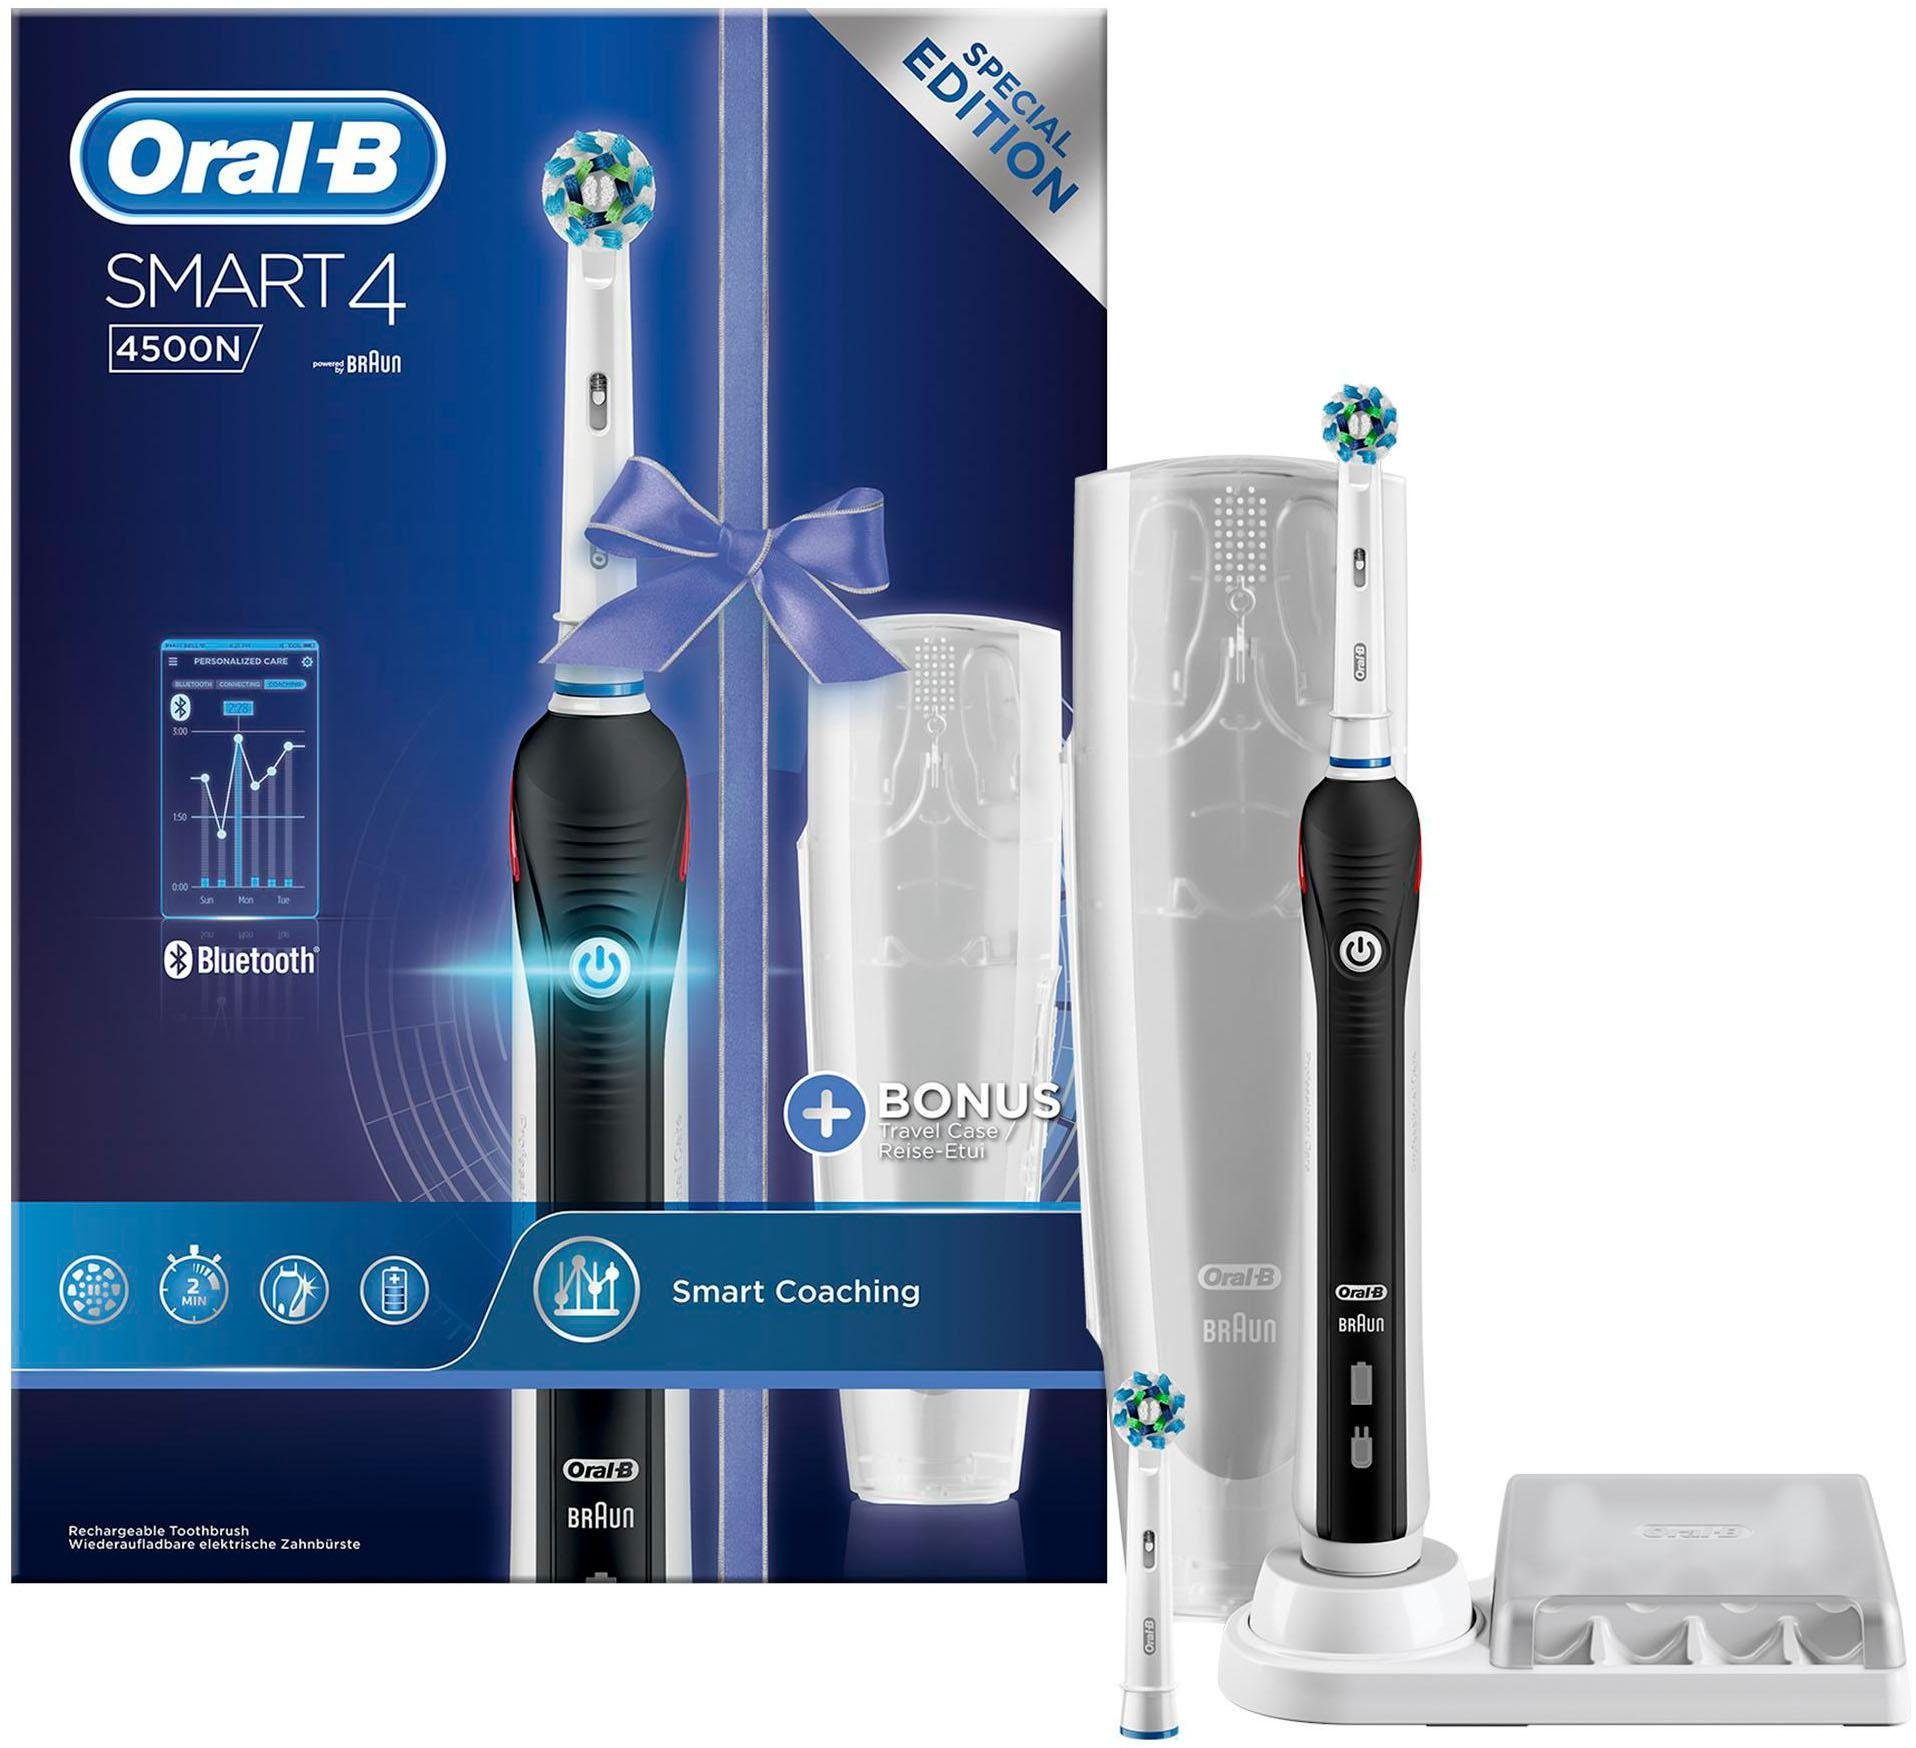 Oral-B Elektrische Zahnbürste Smart 4 4500N, Powered By Braun